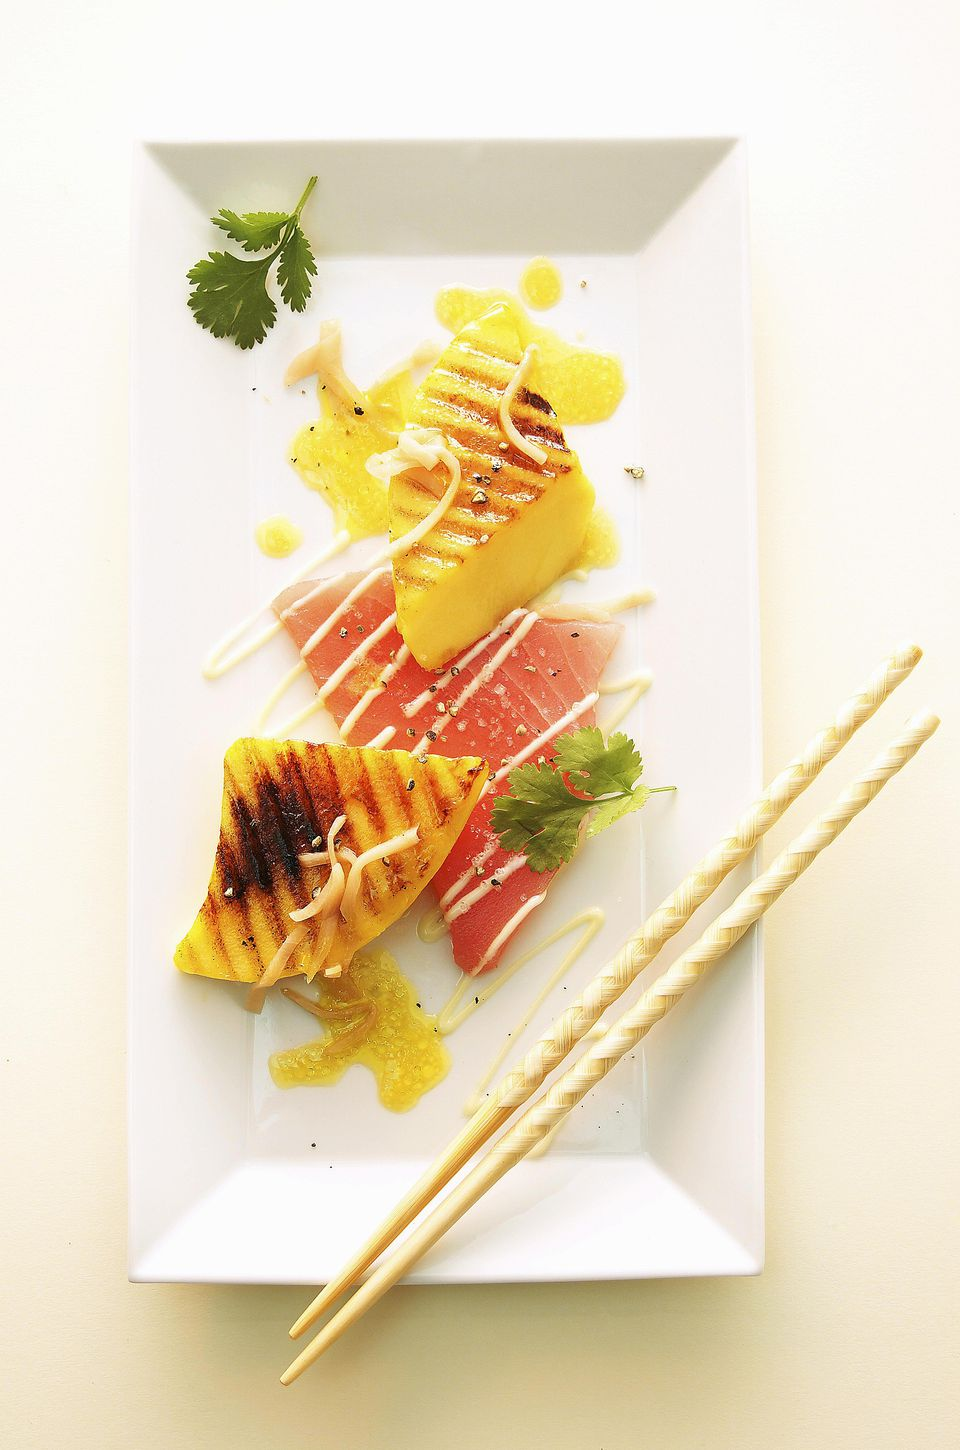 Grilled Cantaloupe Pieces